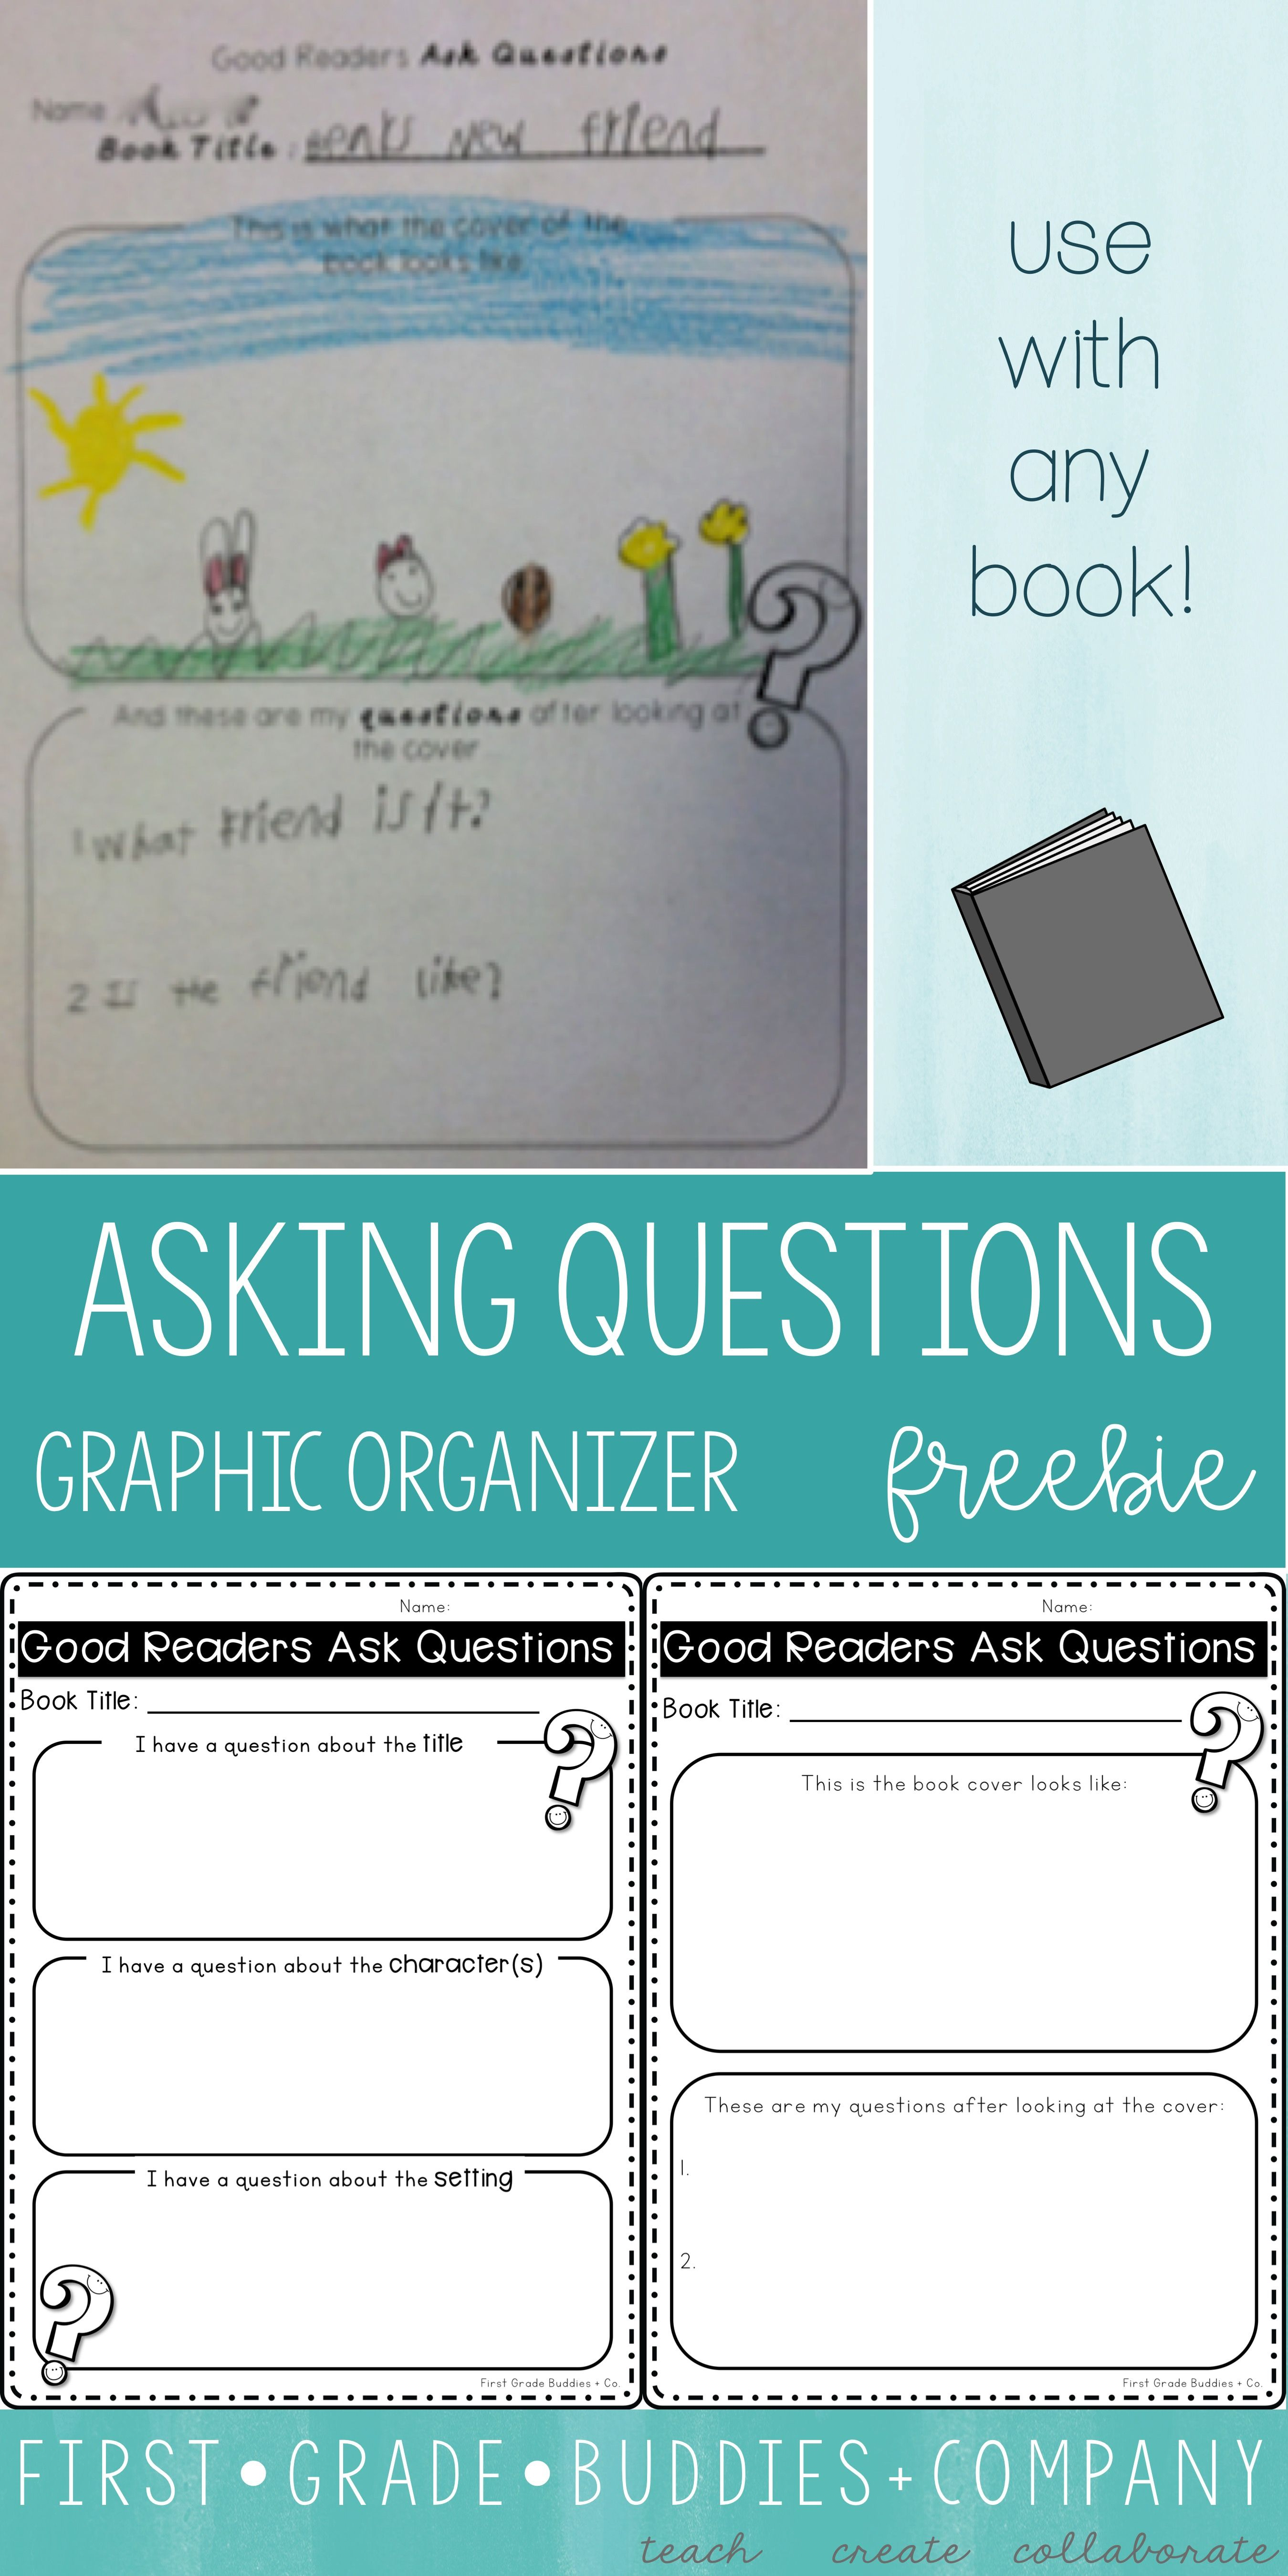 hight resolution of First Grade Buddies: Graphic Organizers for ANY Book! We created one great  big F…   Upper elementary reading